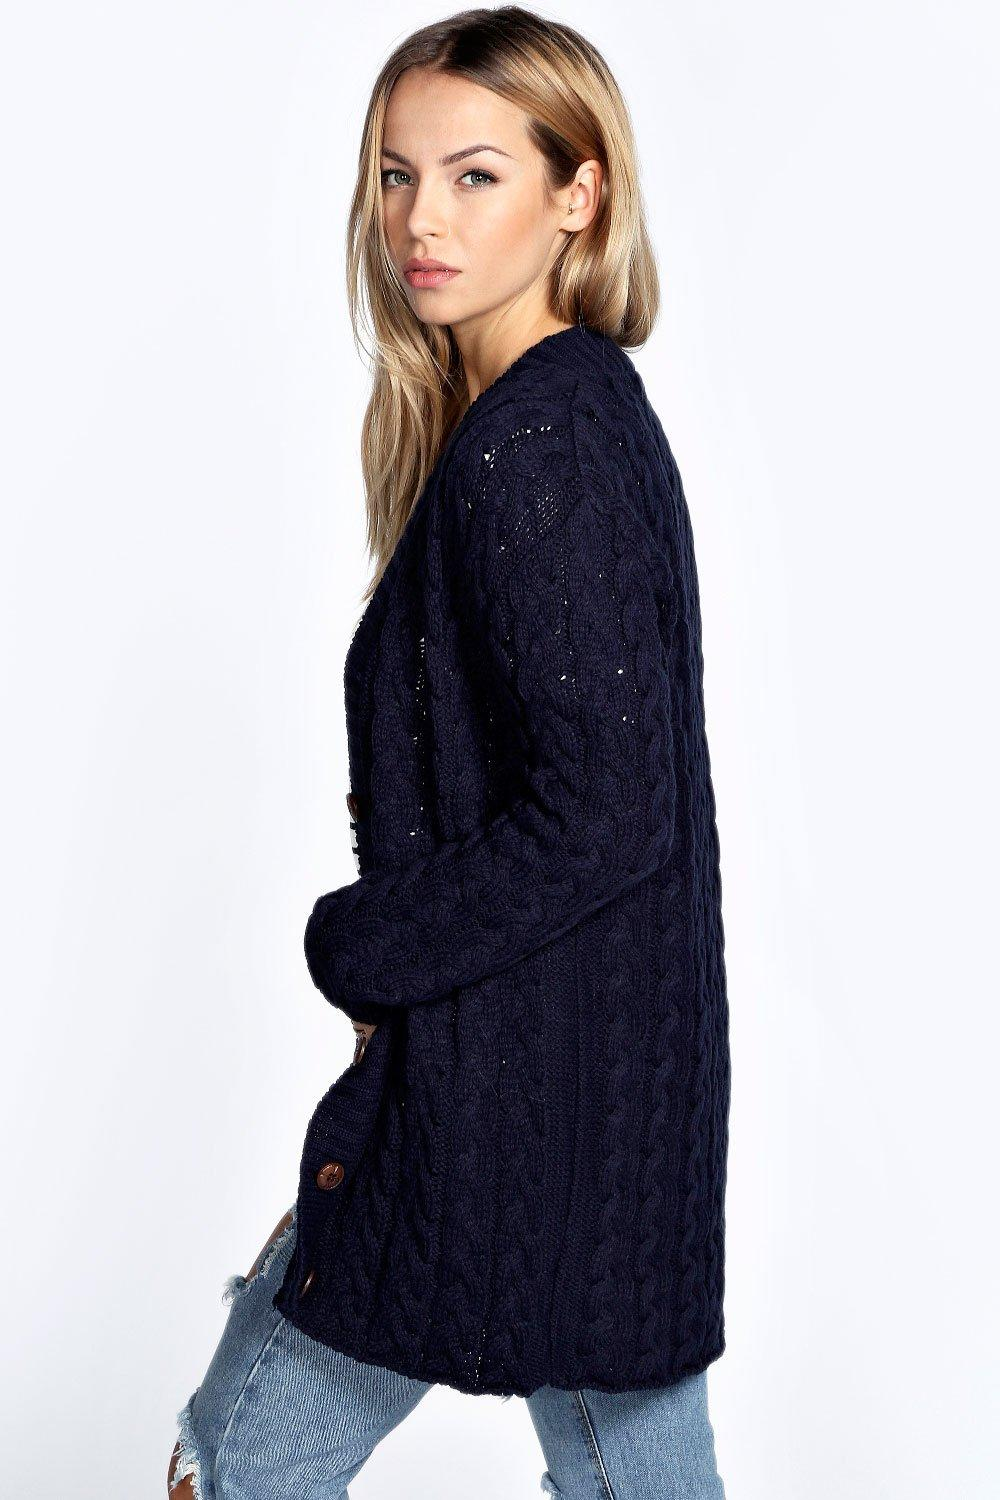 Boohoo Womens Lucy Cable Knit Cardigan | eBay